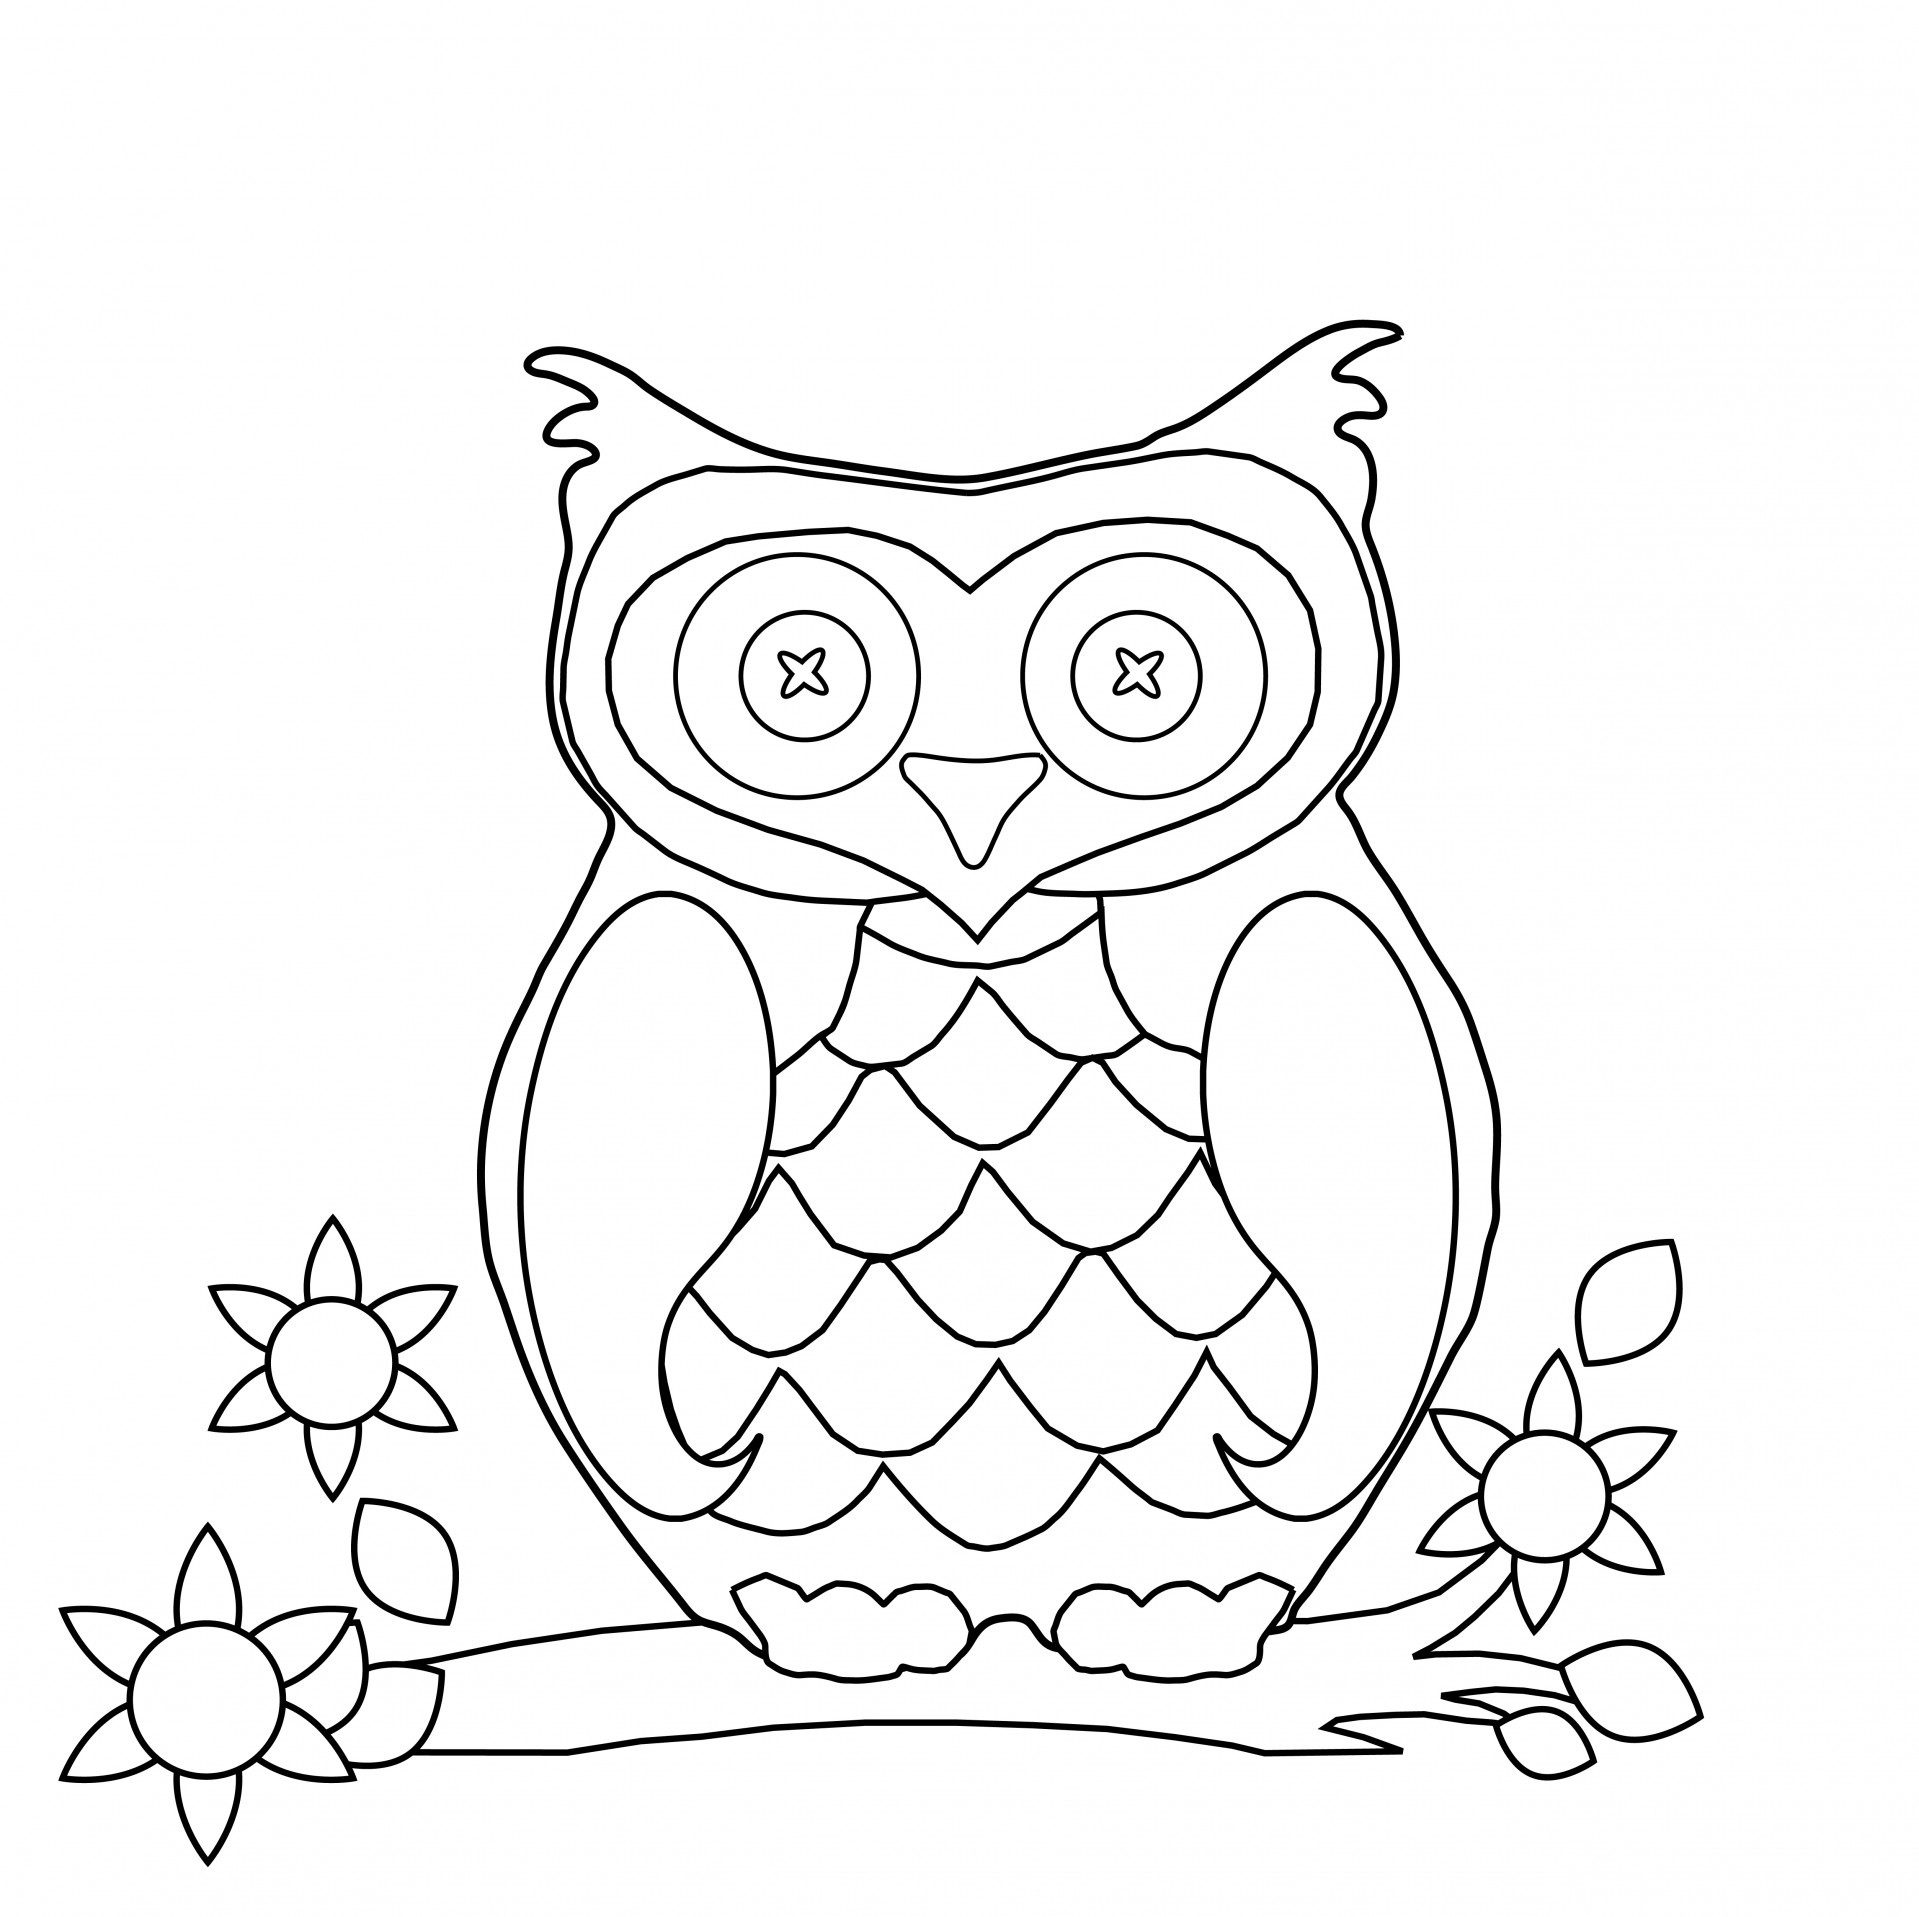 coloring free bunny coloring pages best coloring pages for kids free coloring